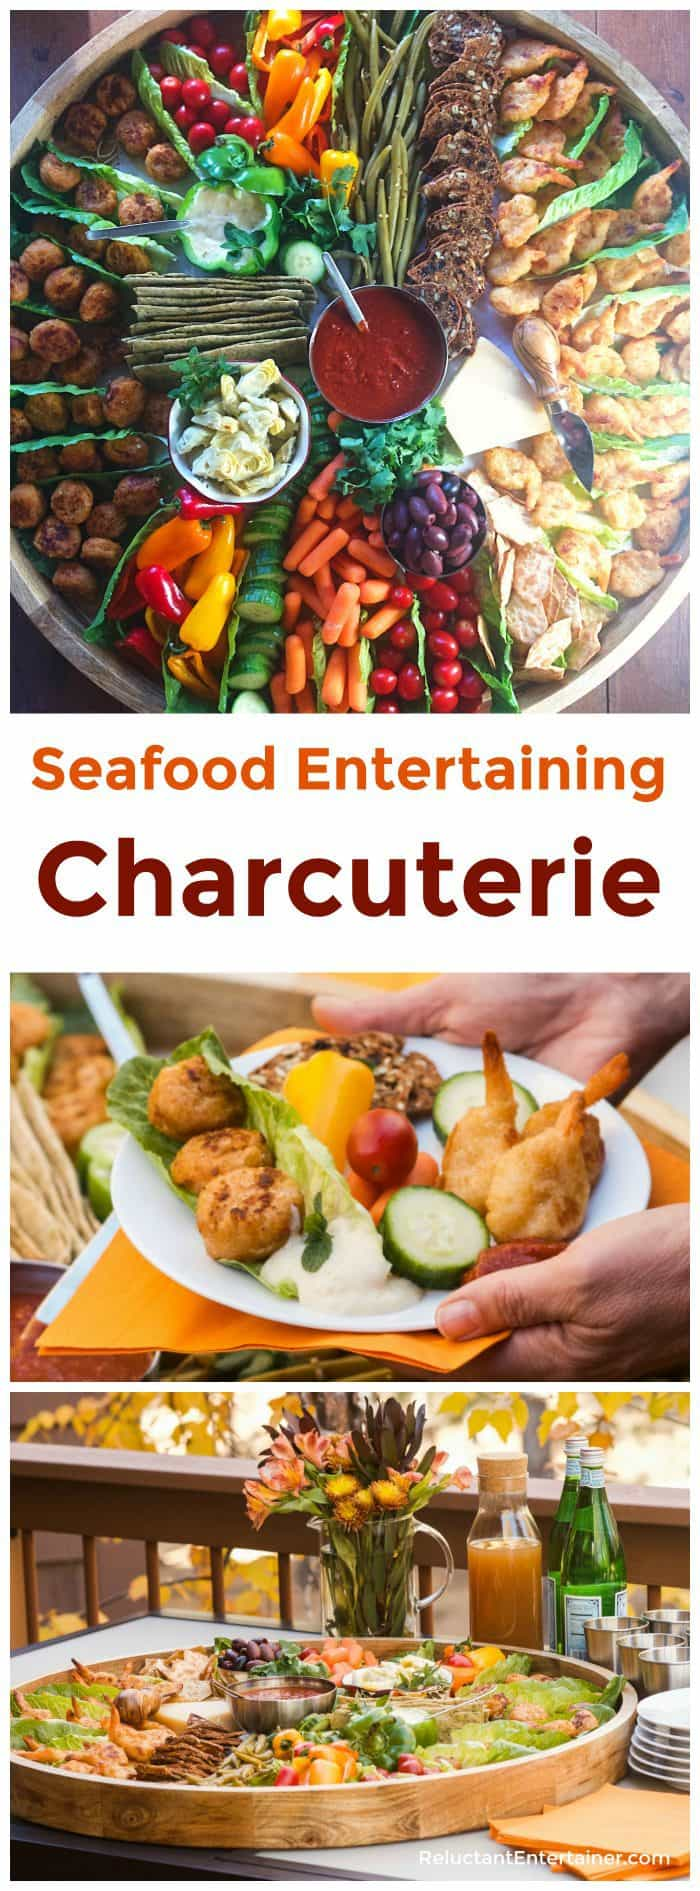 Seafood Entertaining Charcuterie in partnership with SeaPak